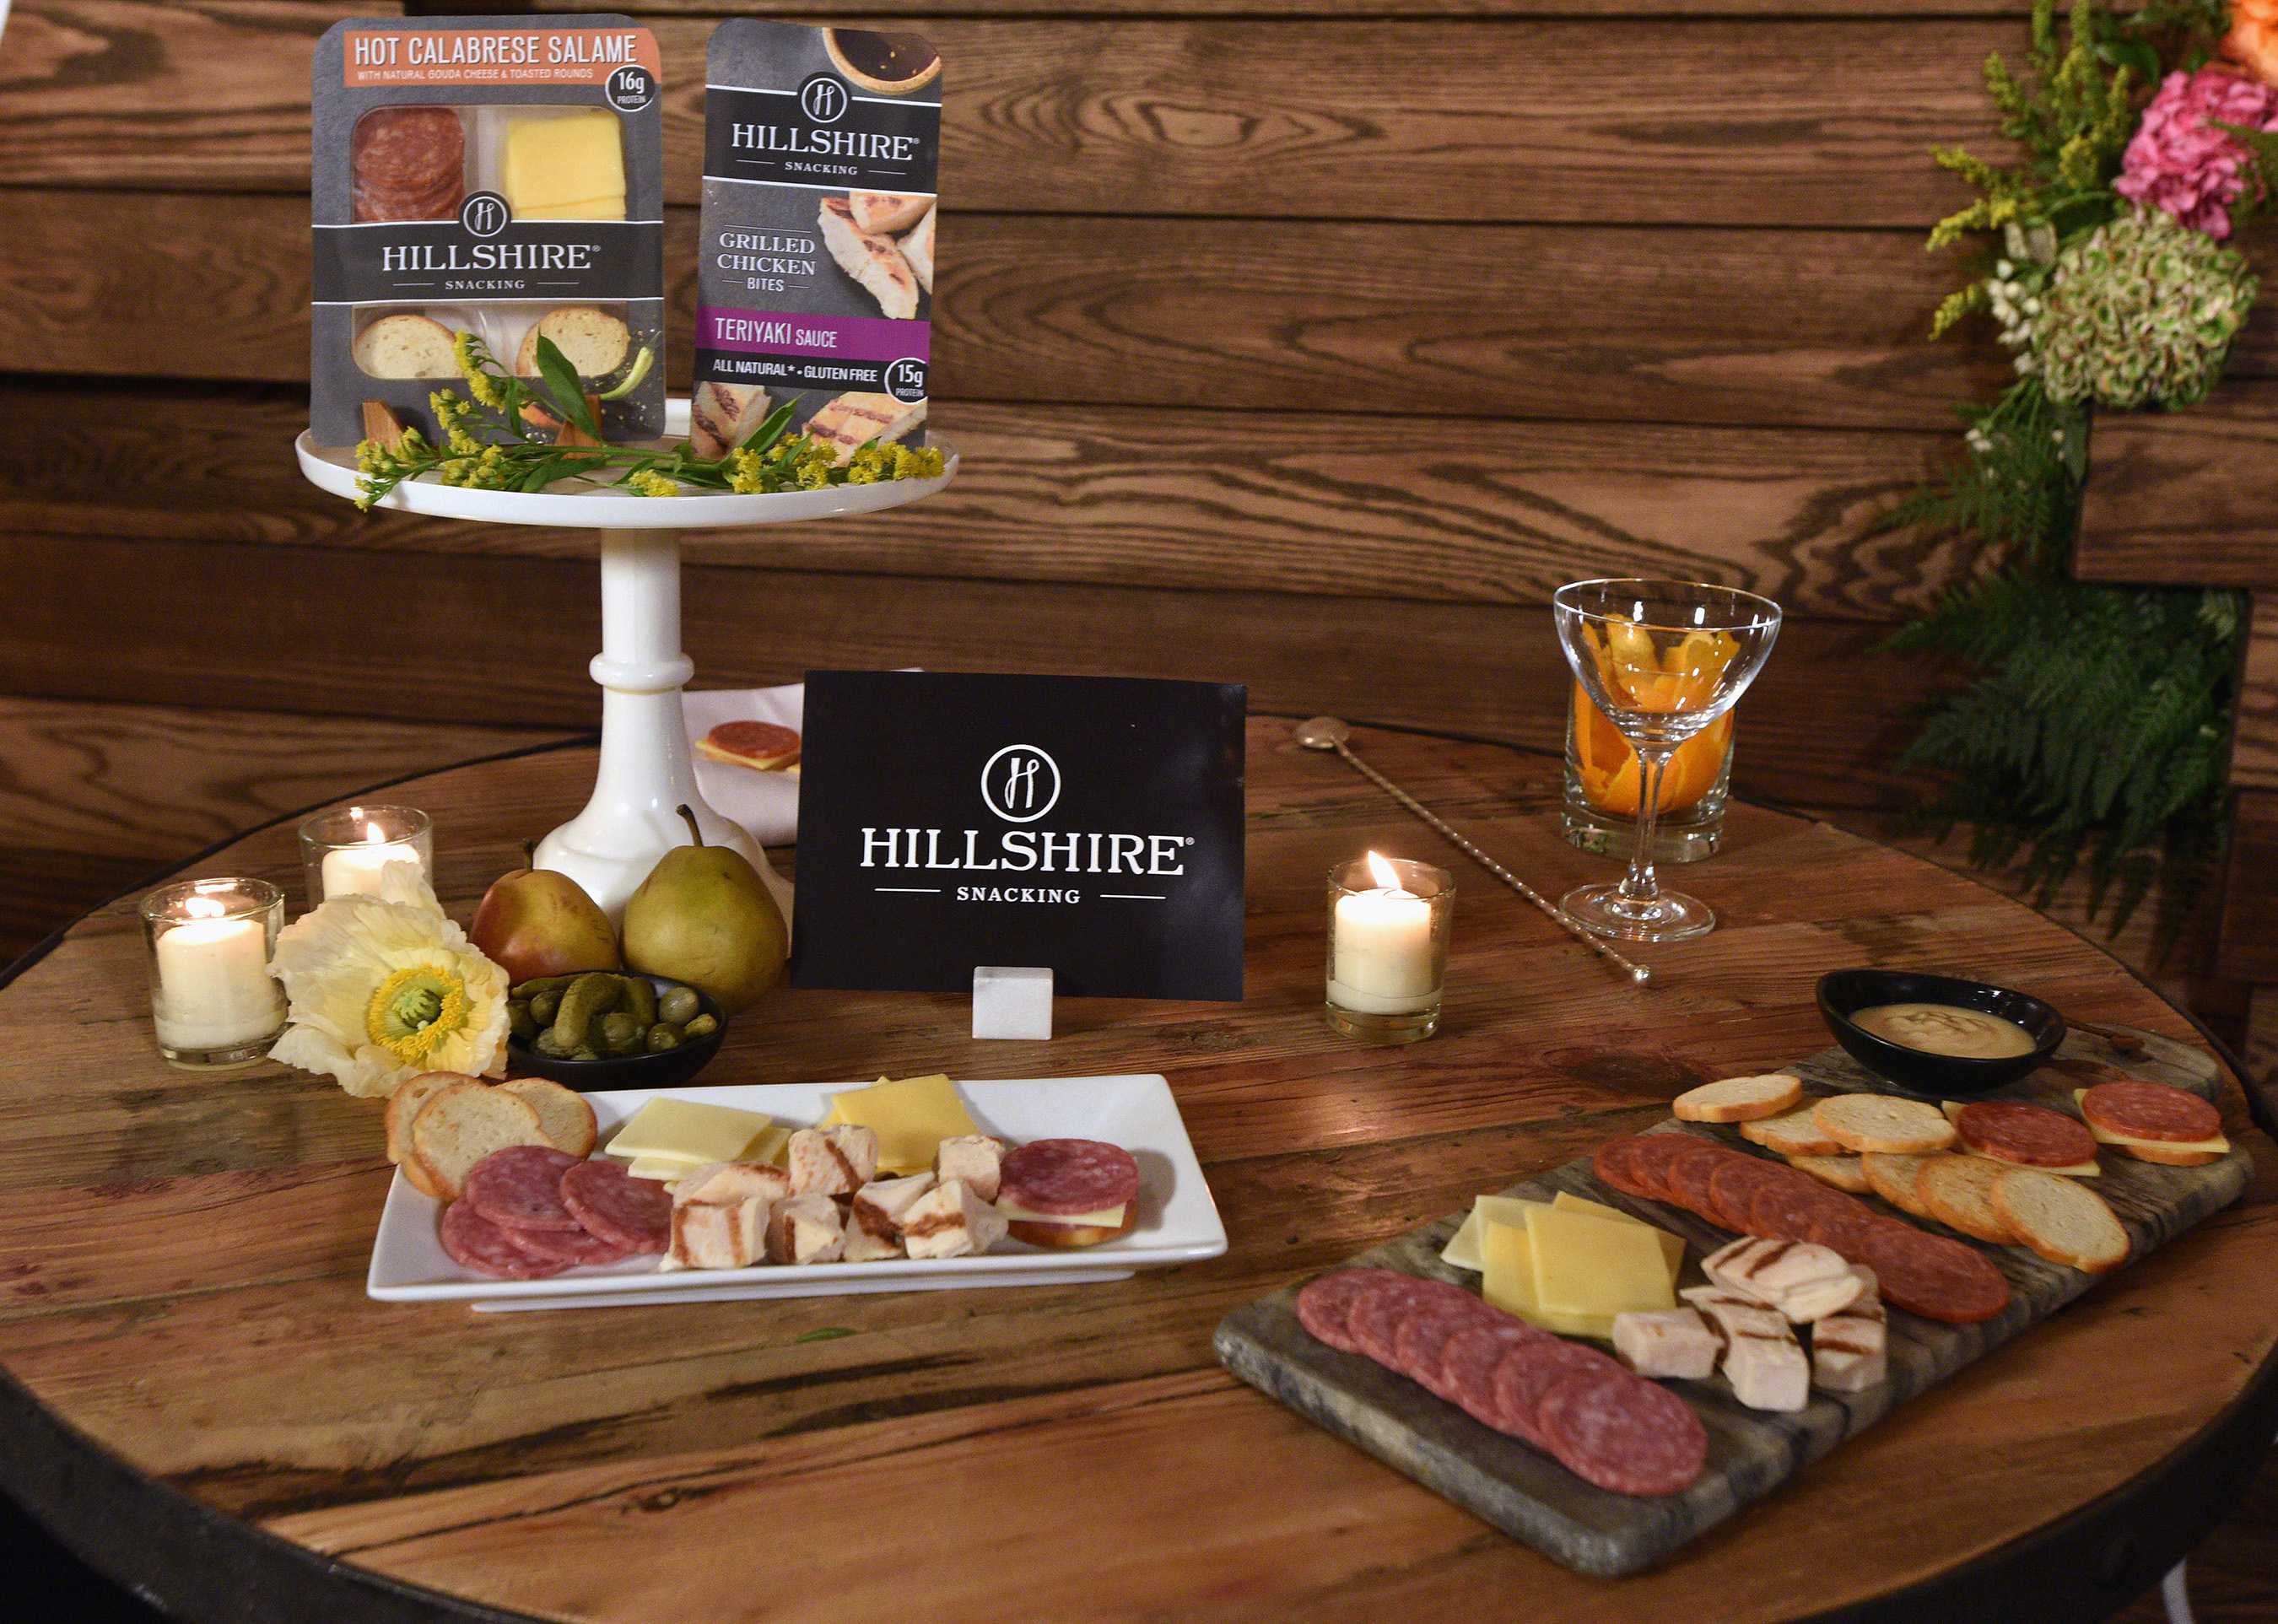 Hillshire Snacking brand is a new snacking brand that delivers perfectly portioned protein snacks for a new, elevated on-the-go eating experience to satisfy a more sophisticated food palate.